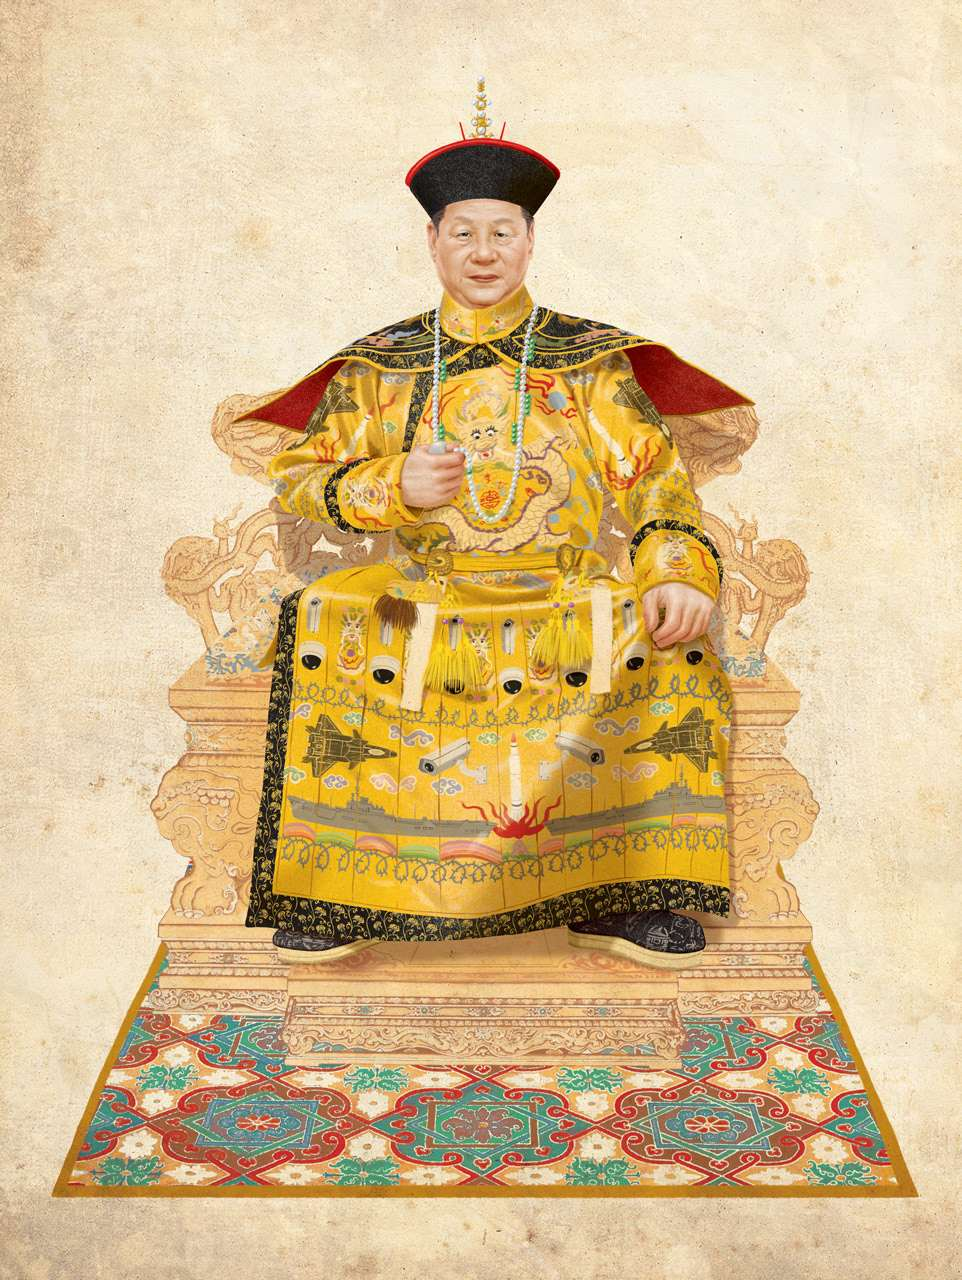 Jason Raish, Photo realistic illustration for Special Edition of L'Obs about 2,000 years of Chinese power up to the current president Xi Jinping